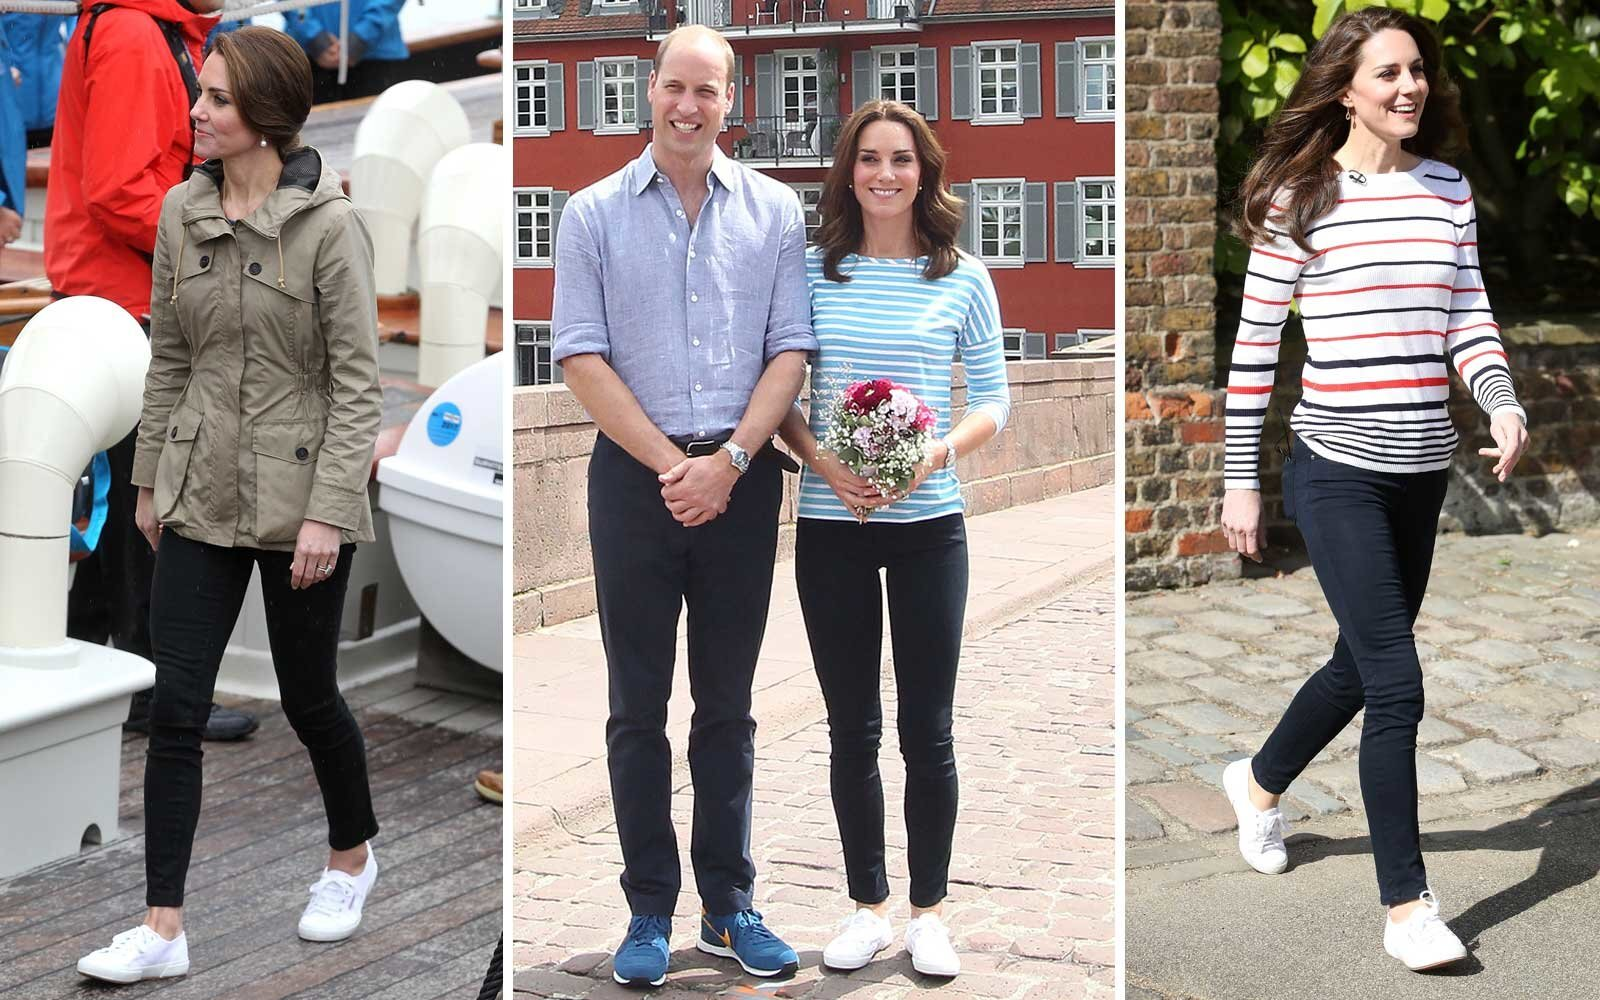 9577367cee9 Outfit Ideas Inspired by Kate Middleton's Travel Style | Travel + ...